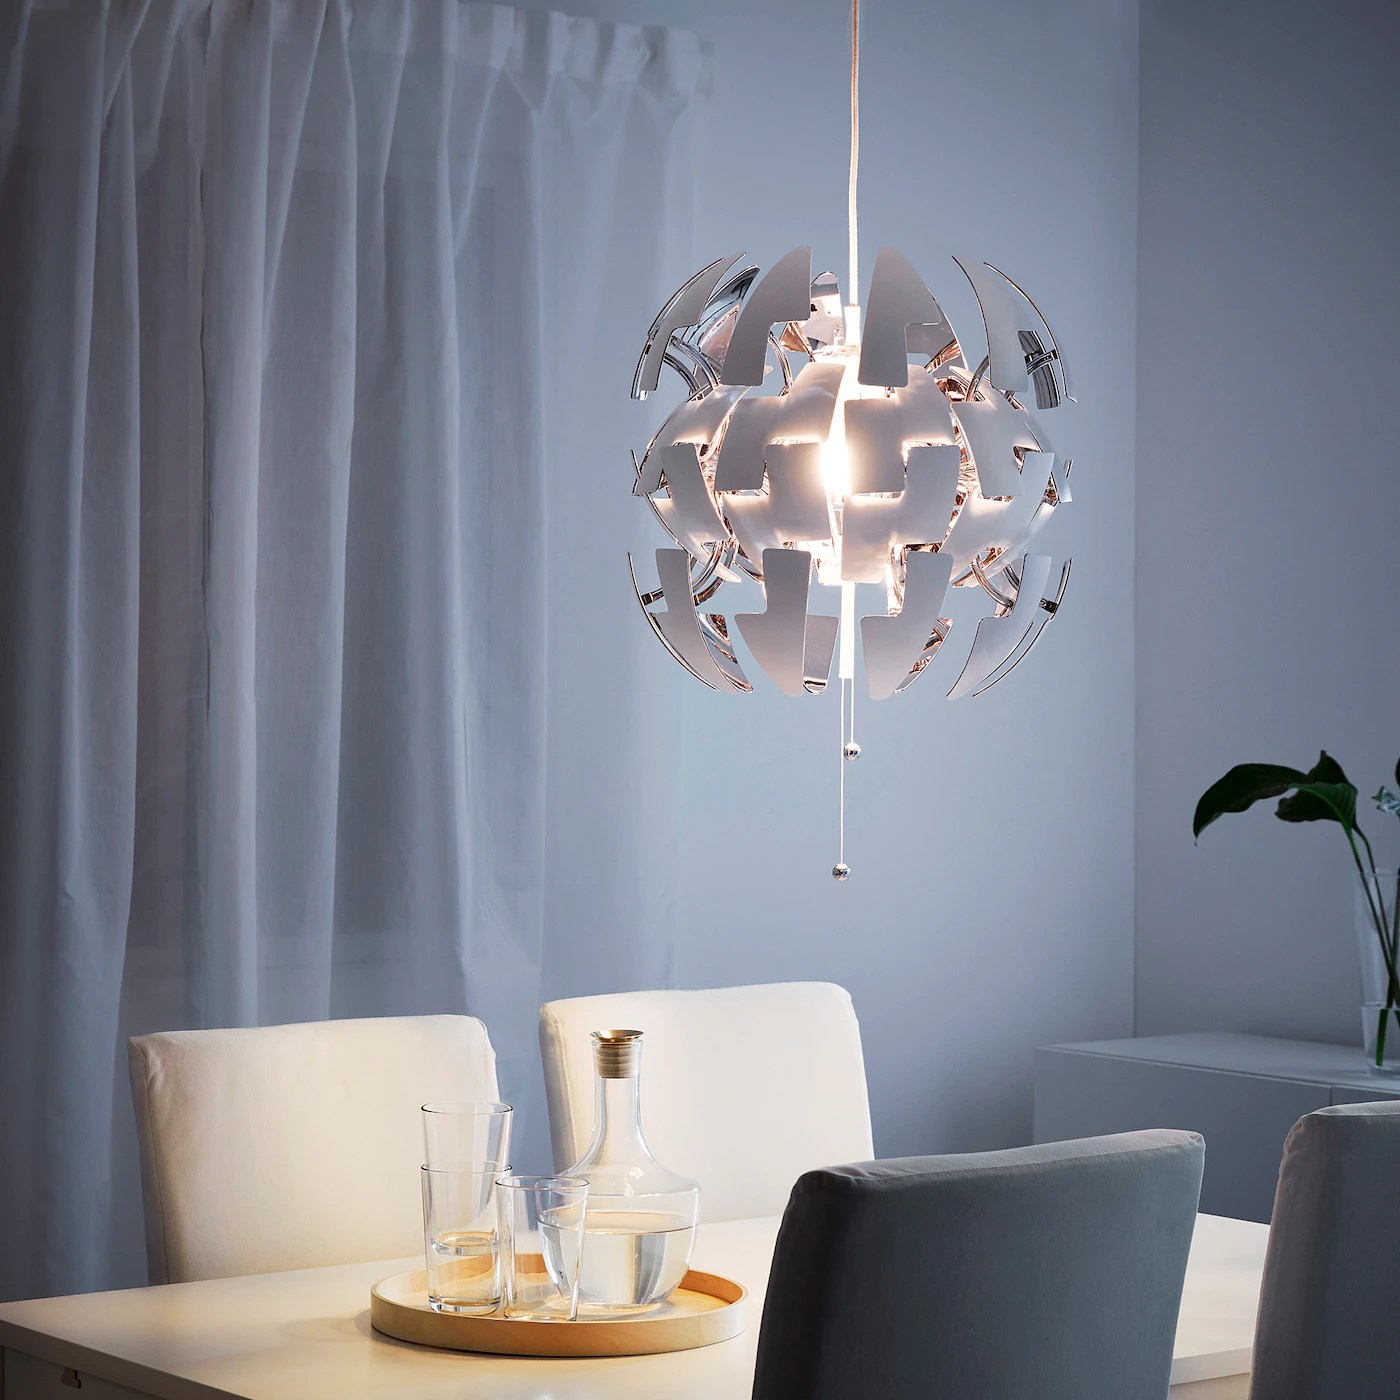 This compensation may impact how and where products appear on th. Ikea Ps 2014 Lampada A Sospensione Bianco Color Argento 35 Cm Ikea It